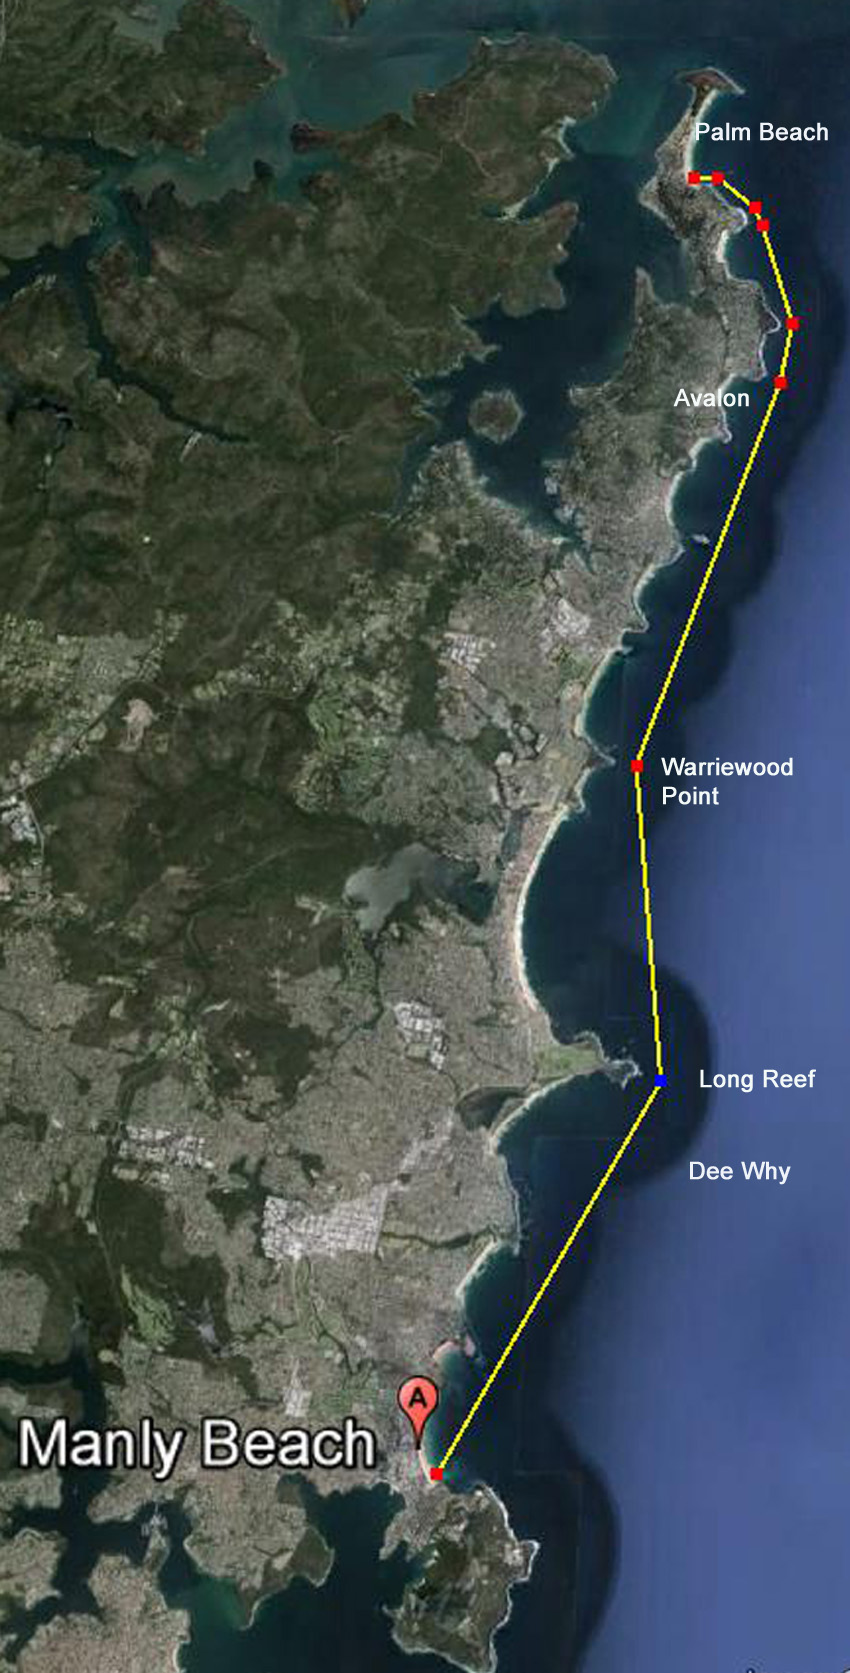 The Conquering Pain Marathon Swim. Palm Beach to Manly , Sydney, Australia. Propsed course